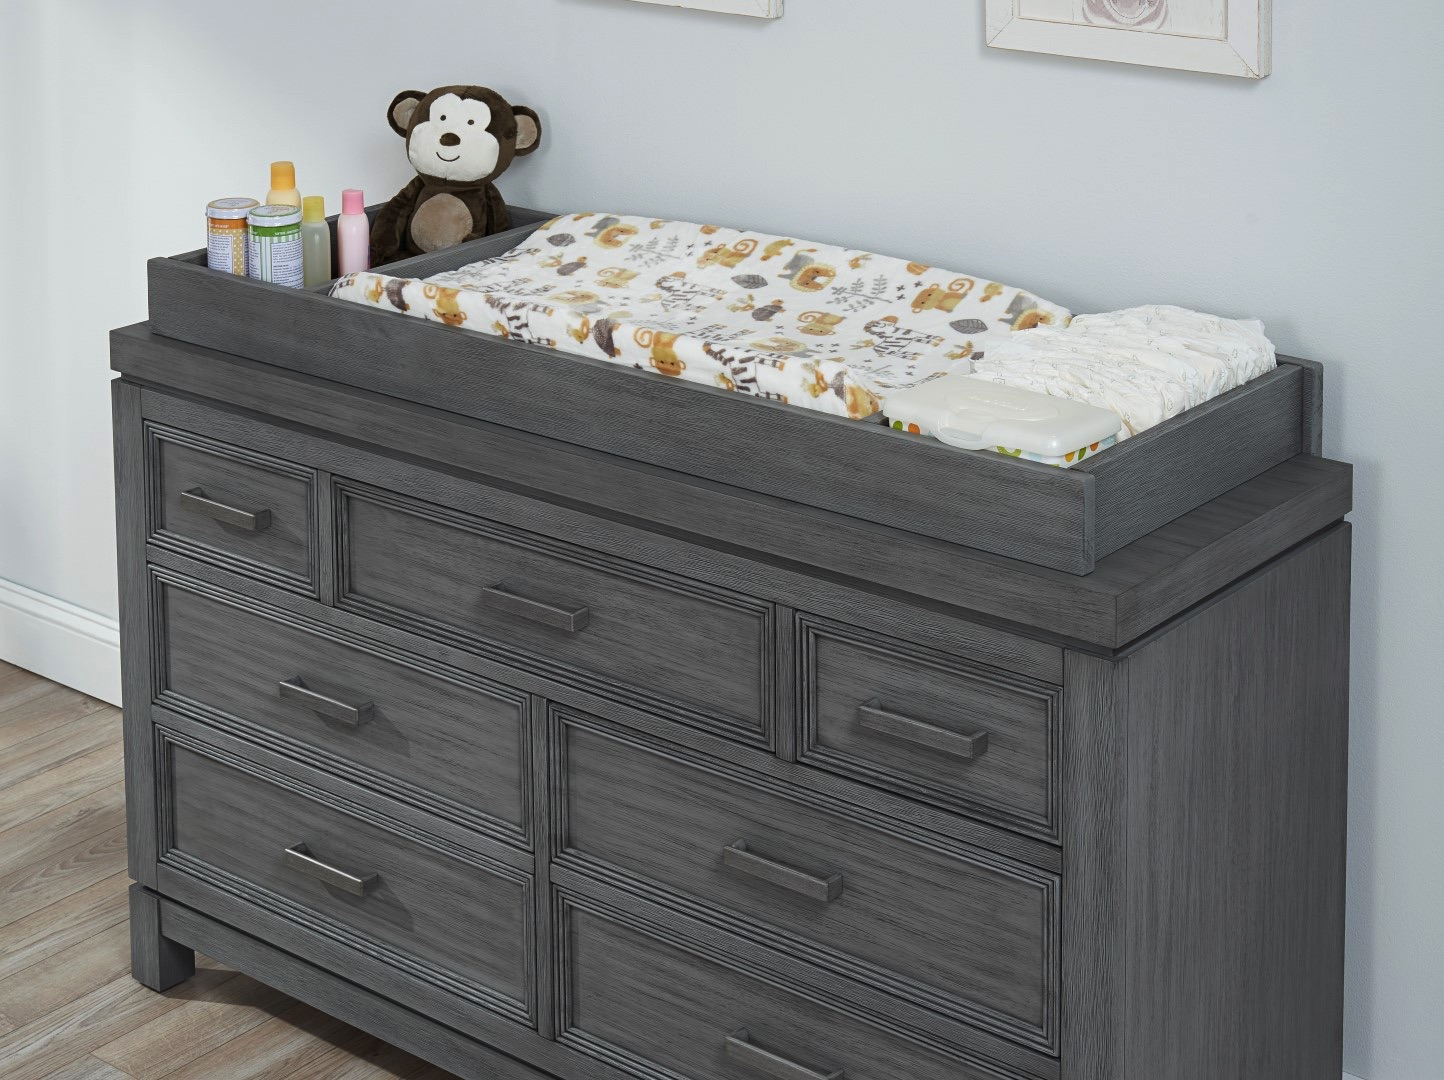 Changing Topper Manchester Rustic Gray Soho Baby